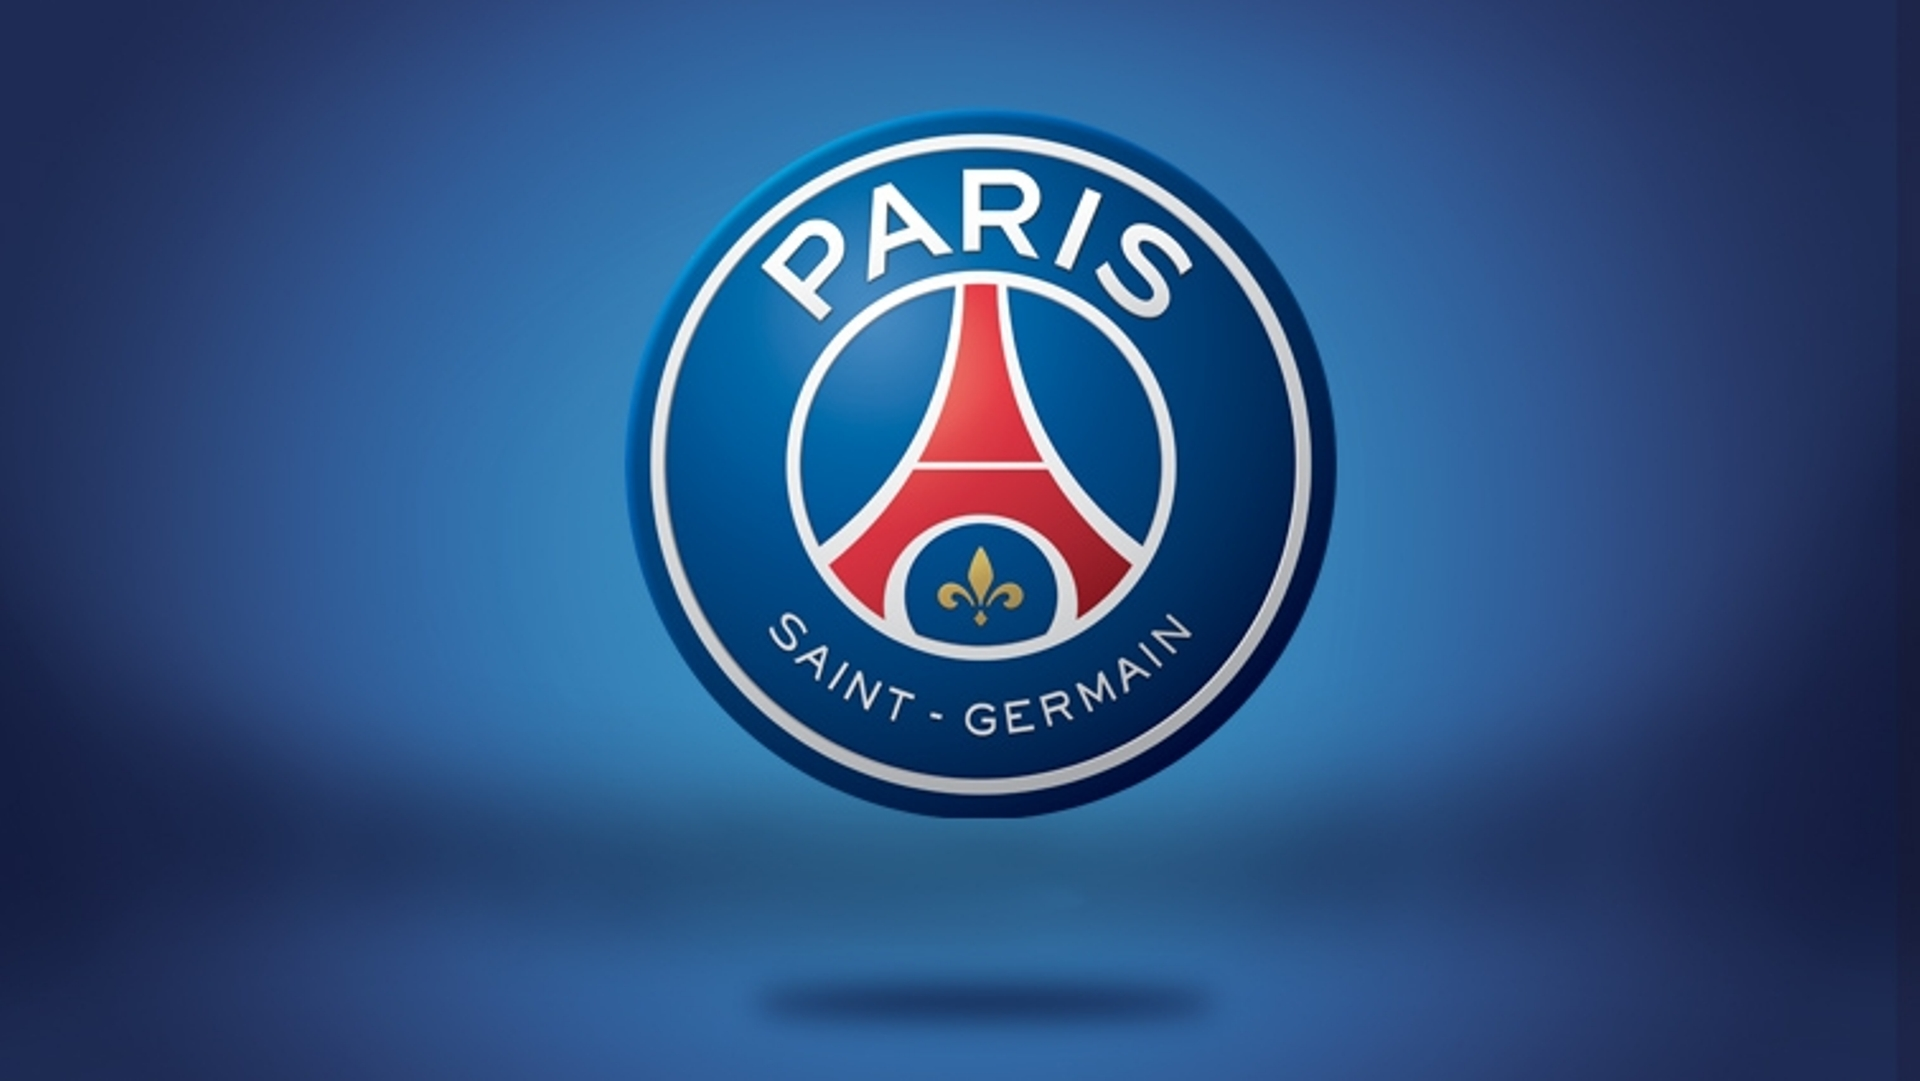 1920x1081 - Paris Saint-Germain F.C. Wallpapers 19